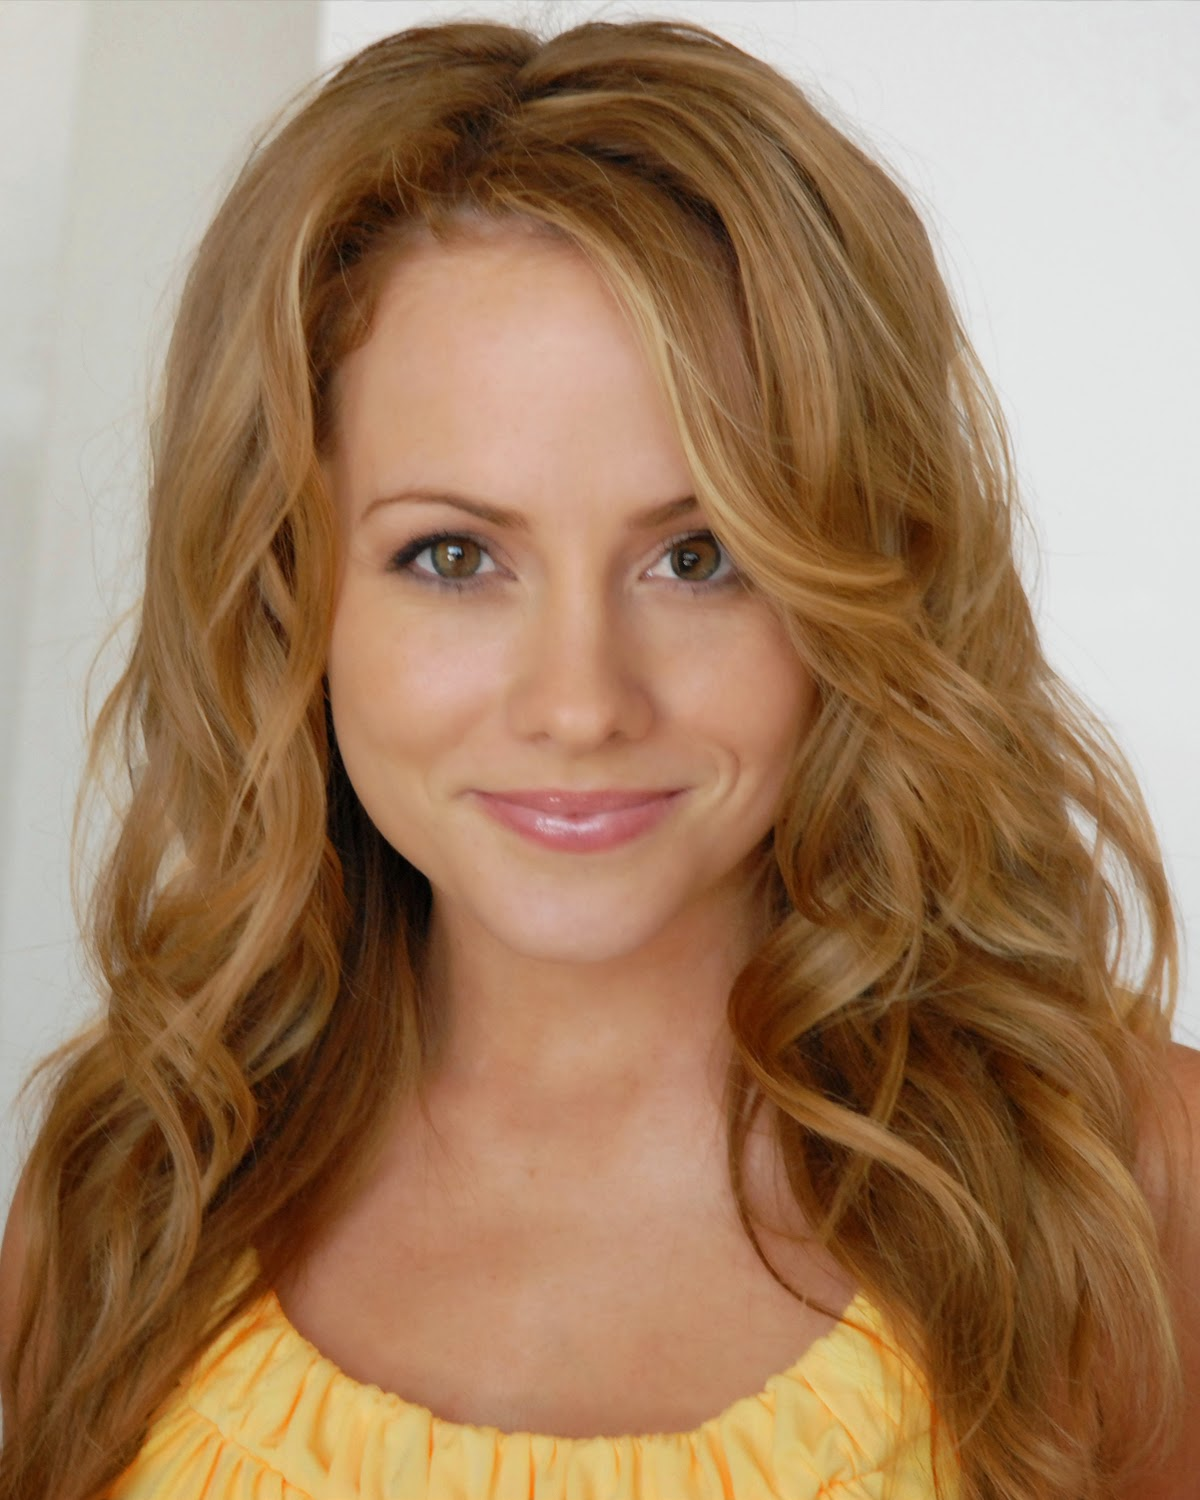 Kelly Stables Nude Pics